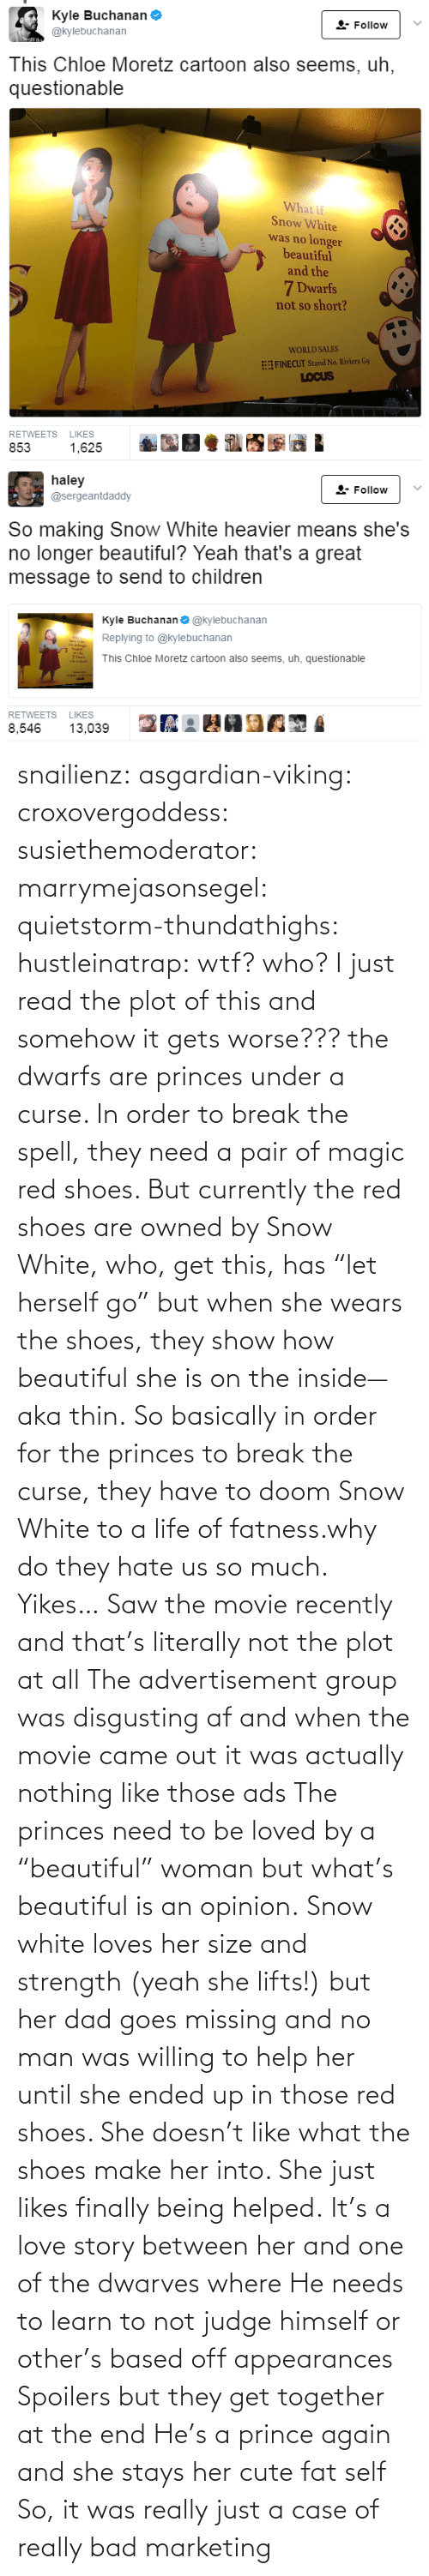 "again: snailienz: asgardian-viking:  croxovergoddess:  susiethemoderator:  marrymejasonsegel:   quietstorm-thundathighs:  hustleinatrap: wtf?  who?   I just read the plot of this and somehow it gets worse??? the dwarfs are princes under a curse. In order to break the spell, they need a pair of magic red shoes. But currently the red shoes are owned by Snow White, who, get this, has ""let herself go"" but when she wears the shoes, they show how beautiful she is on the inside—aka thin. So basically in order for the princes to break the curse, they have to doom Snow White to a life of fatness.why do they hate us so much.   Yikes…    Saw the movie recently and that's literally not the plot at all The advertisement group was disgusting af and when the movie came out it was actually nothing like those ads The princes need to be loved by a ""beautiful"" woman but what's beautiful is an opinion. Snow white loves her size and strength (yeah she lifts!) but her dad goes missing and no man was willing to help her until she ended up in those red shoes. She doesn't like what the shoes make her into. She just likes finally being helped. It's a love story between her and one of the dwarves where He needs to learn to not judge himself or other's based off appearances  Spoilers but they get together at the end He's a prince again and she stays her cute fat self  So, it was really just a case of really bad marketing"